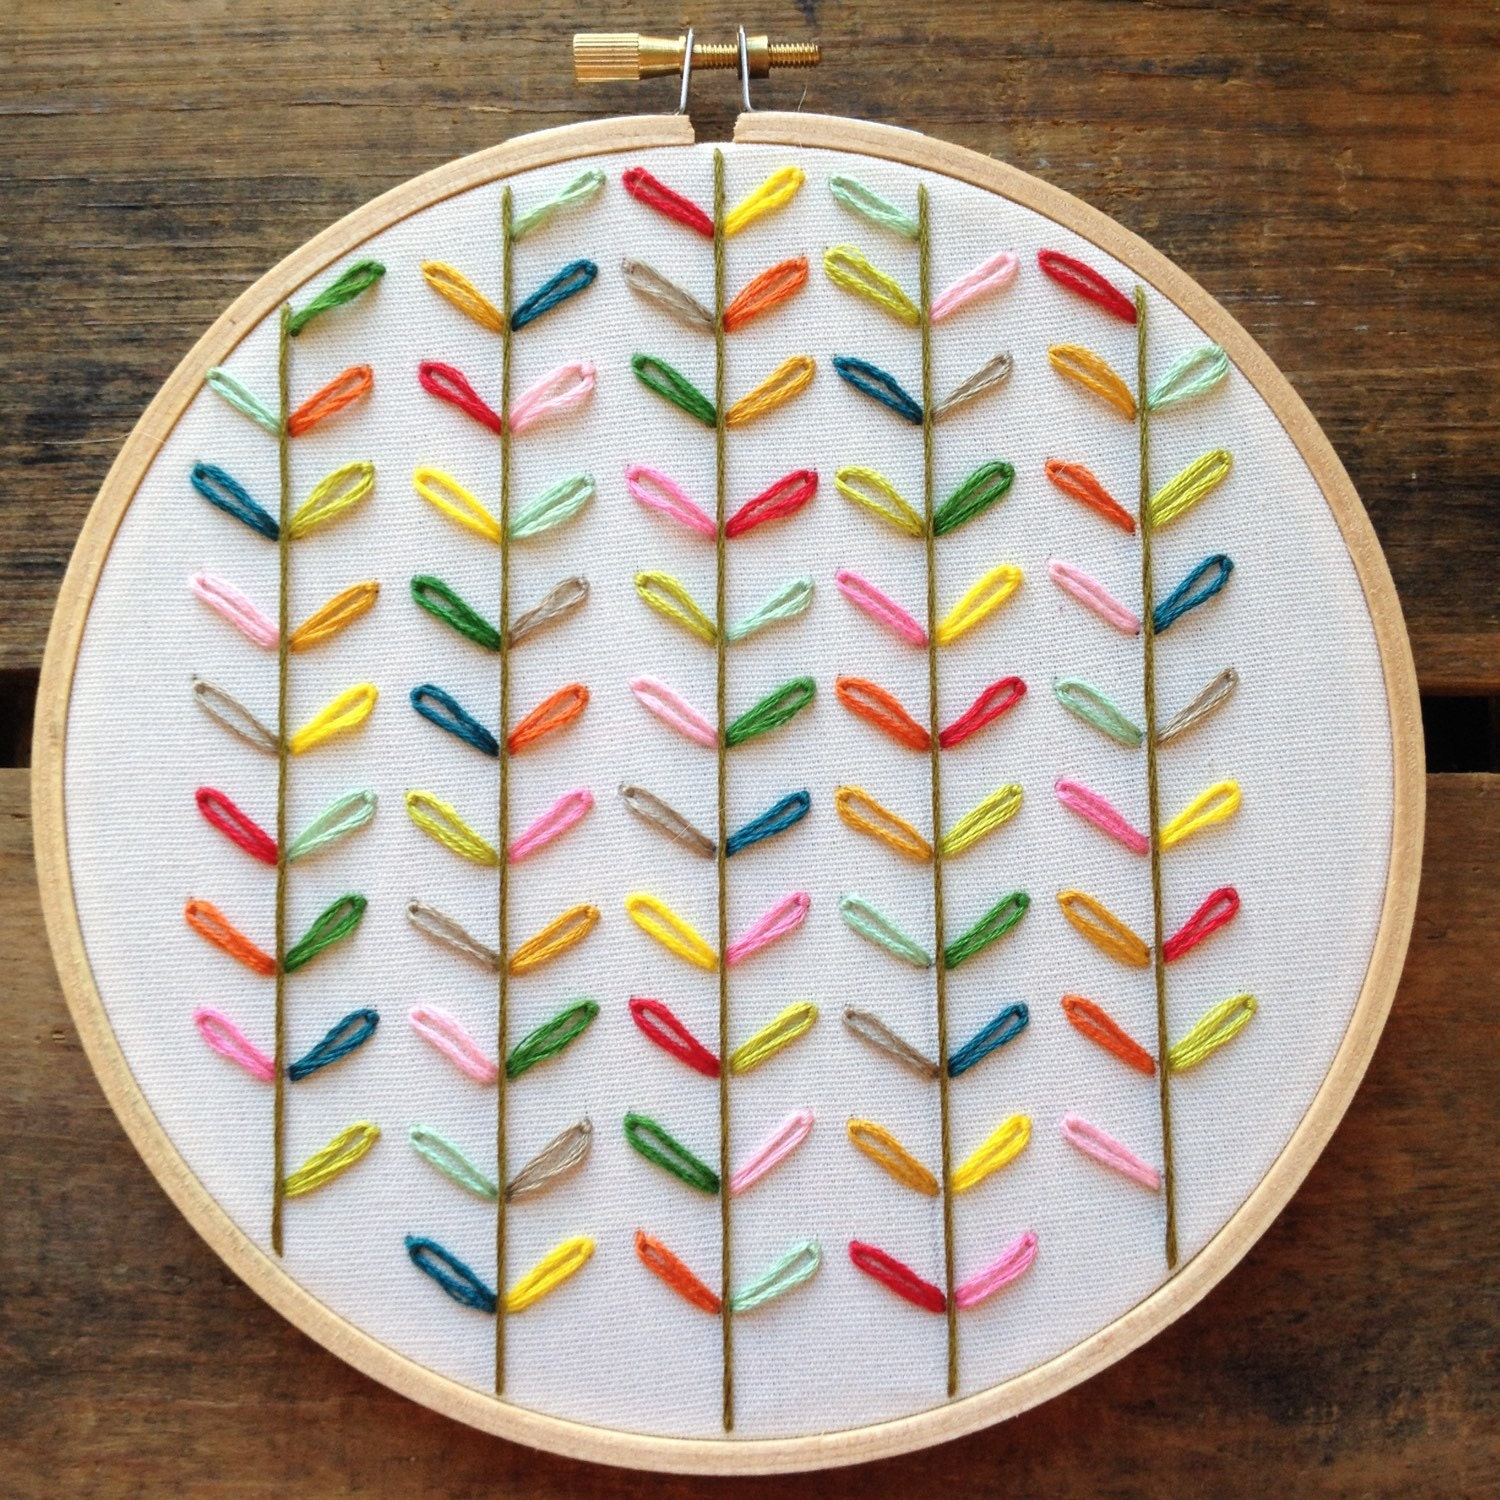 Orla kiely inspired embroidery hoop by bugandbeanstitching